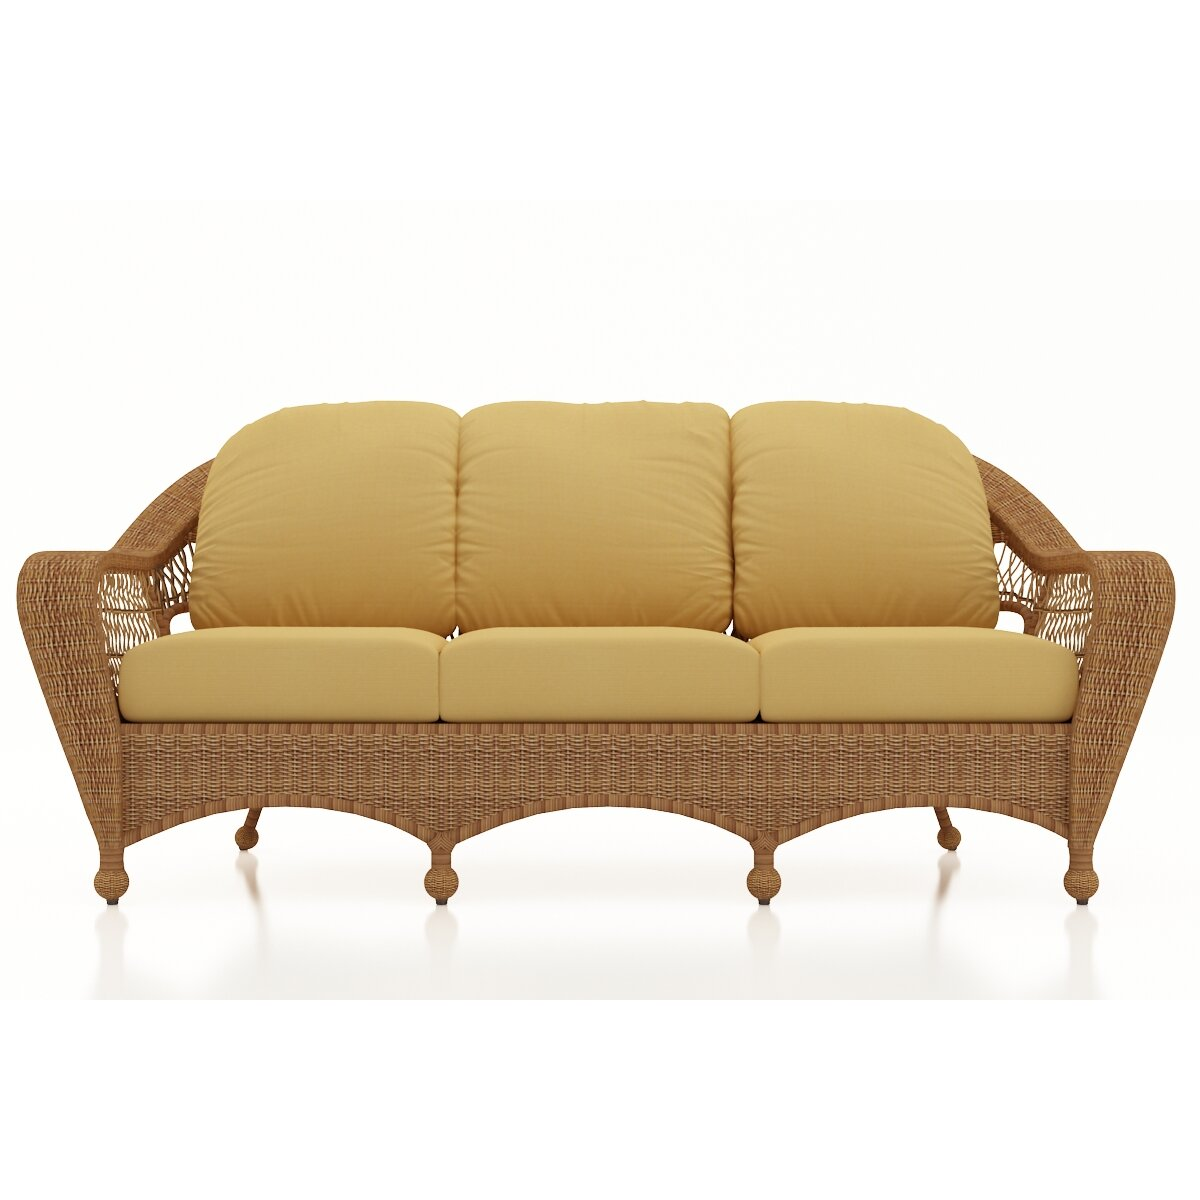 Patio Furniture Loveseat Cushions: Forever Patio Catalina Sofa With Cushions